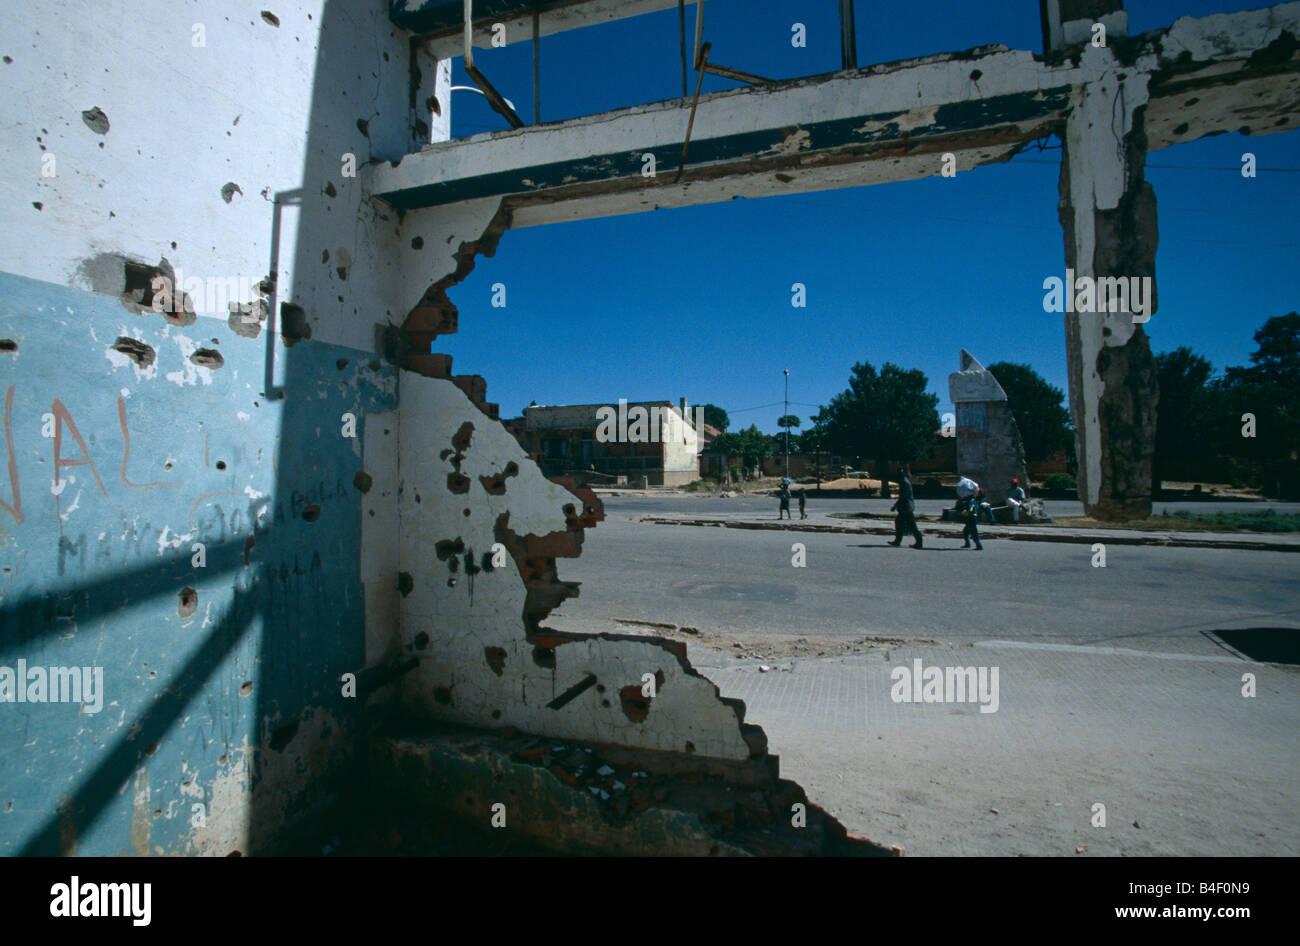 Buildings damaged by the civil war in Angola. - Stock Image